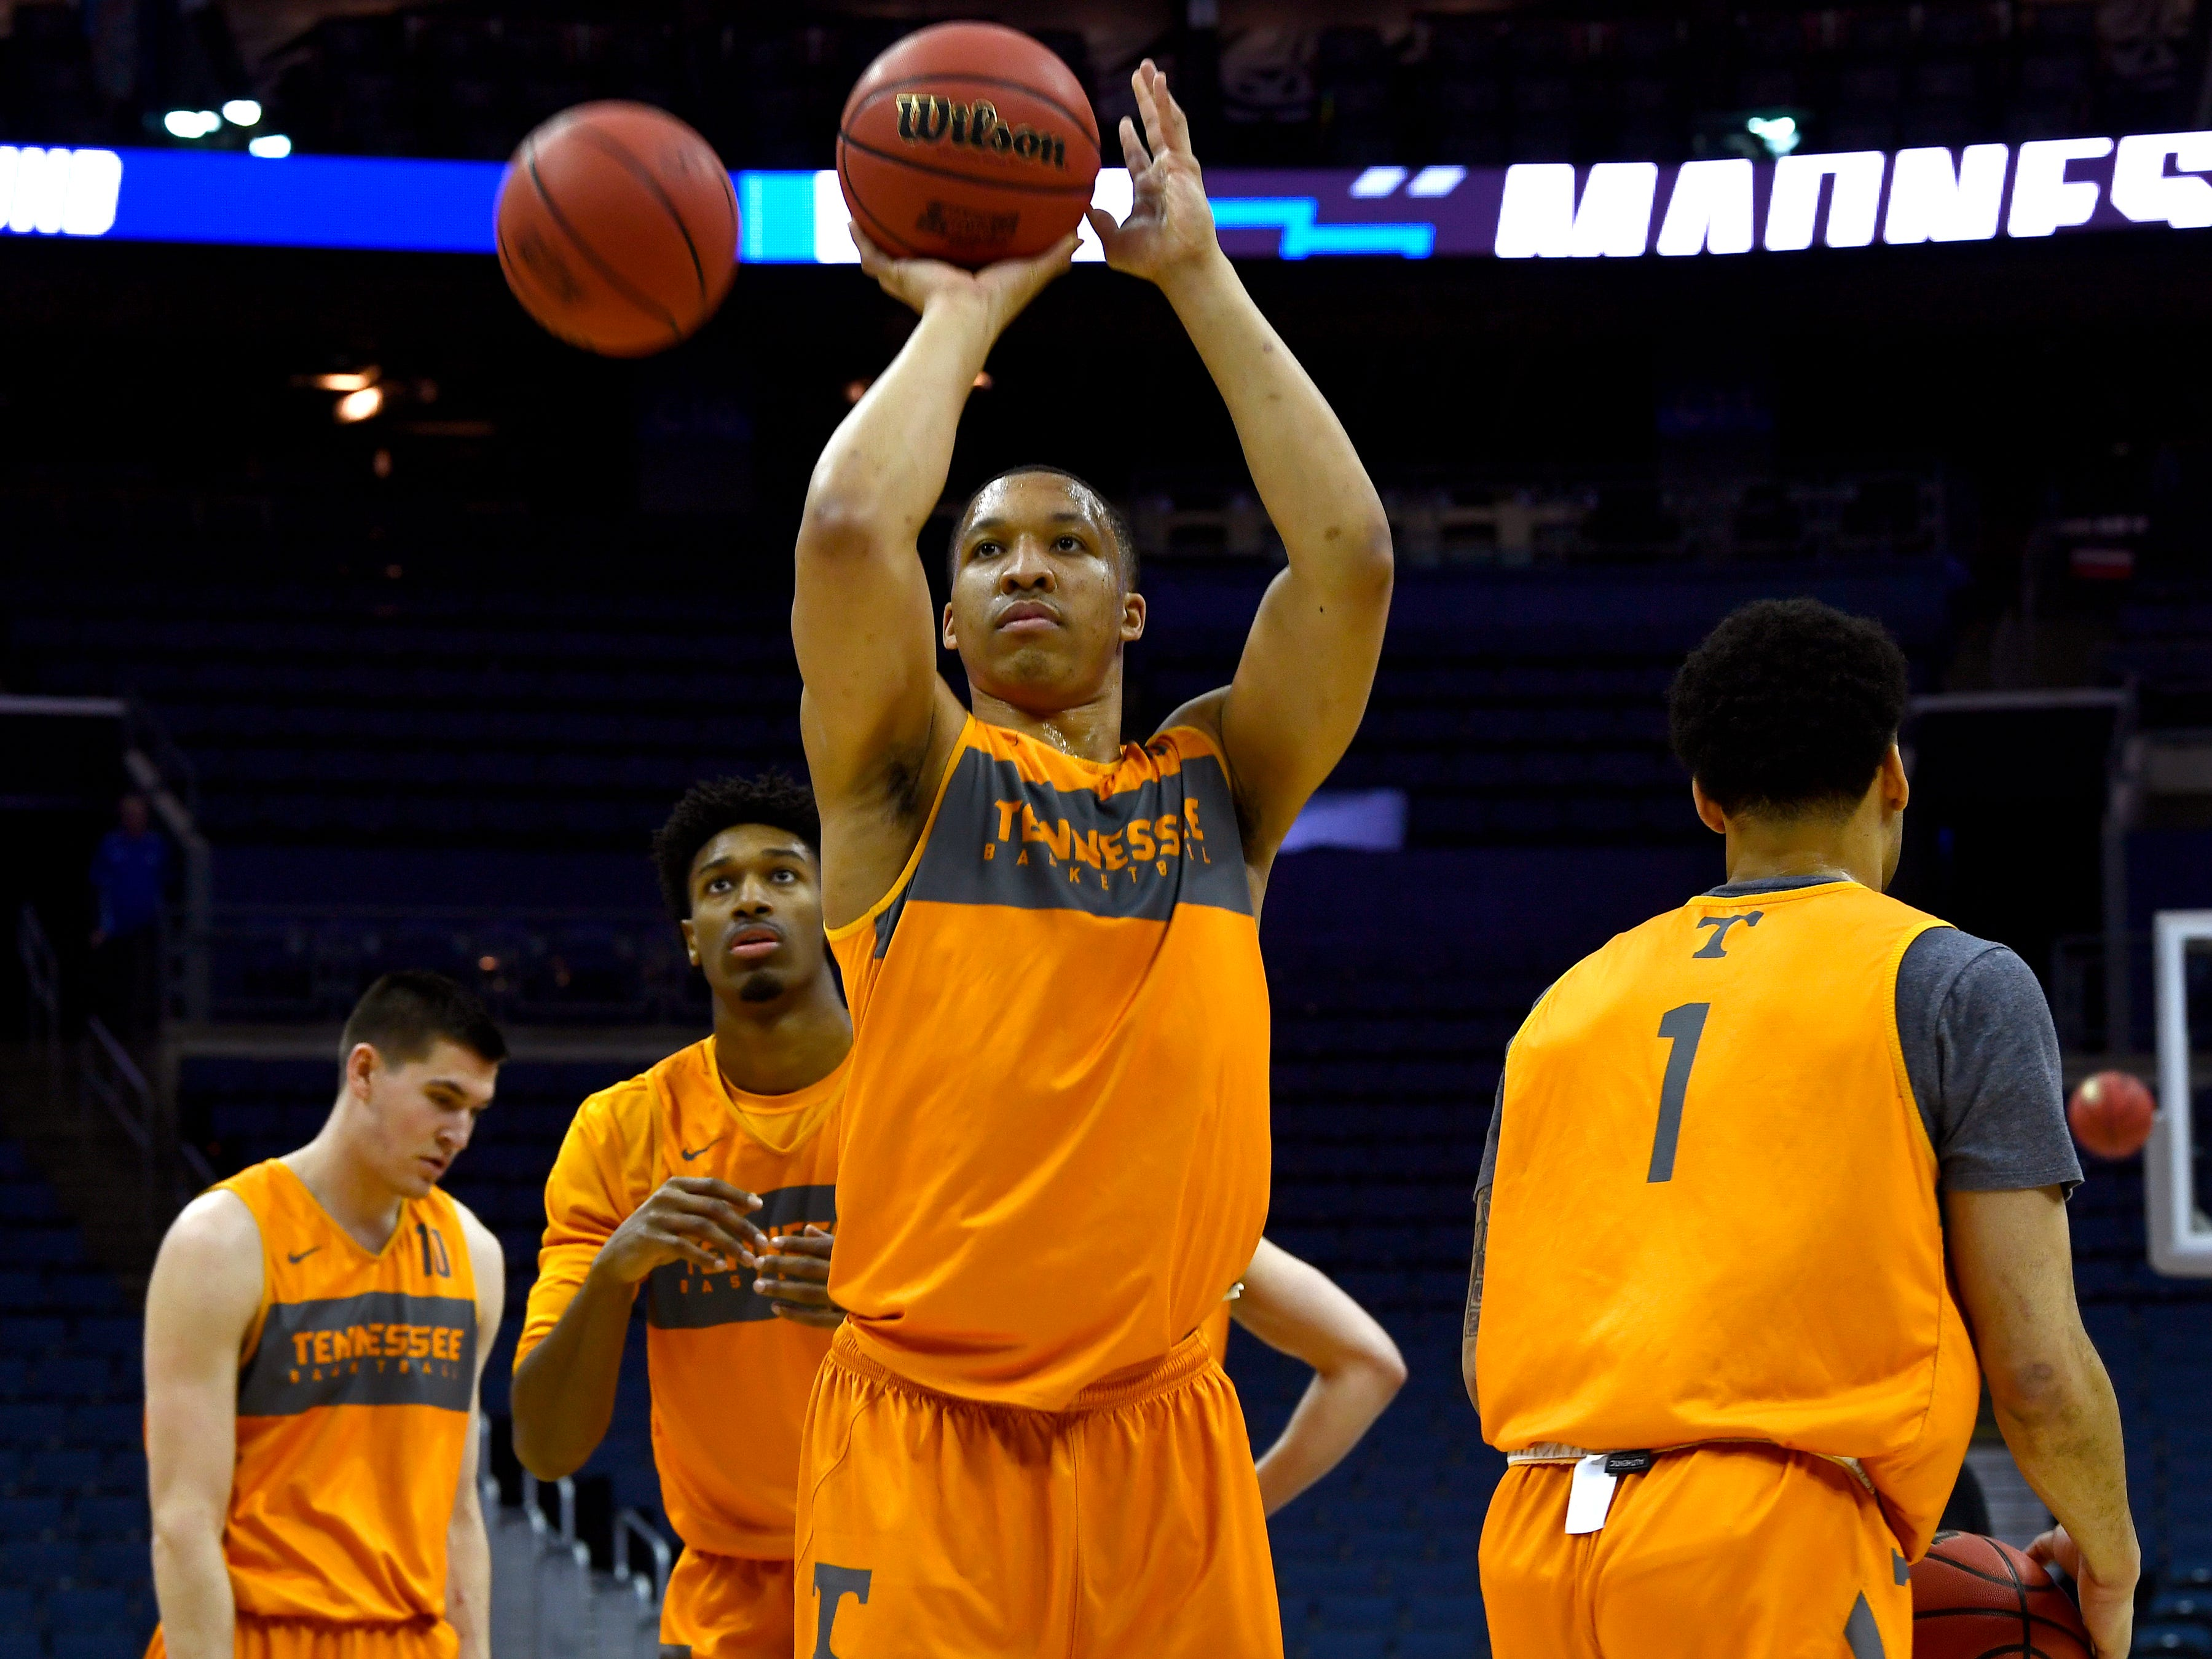 Tennessee forward Grant Williams (2) shoots the ball during Tennessee's practice on Thursday, March 21, 2019, before their first round NCAA Tournament game against Colgate at Nationwide Arena in Columbus, Ohio.